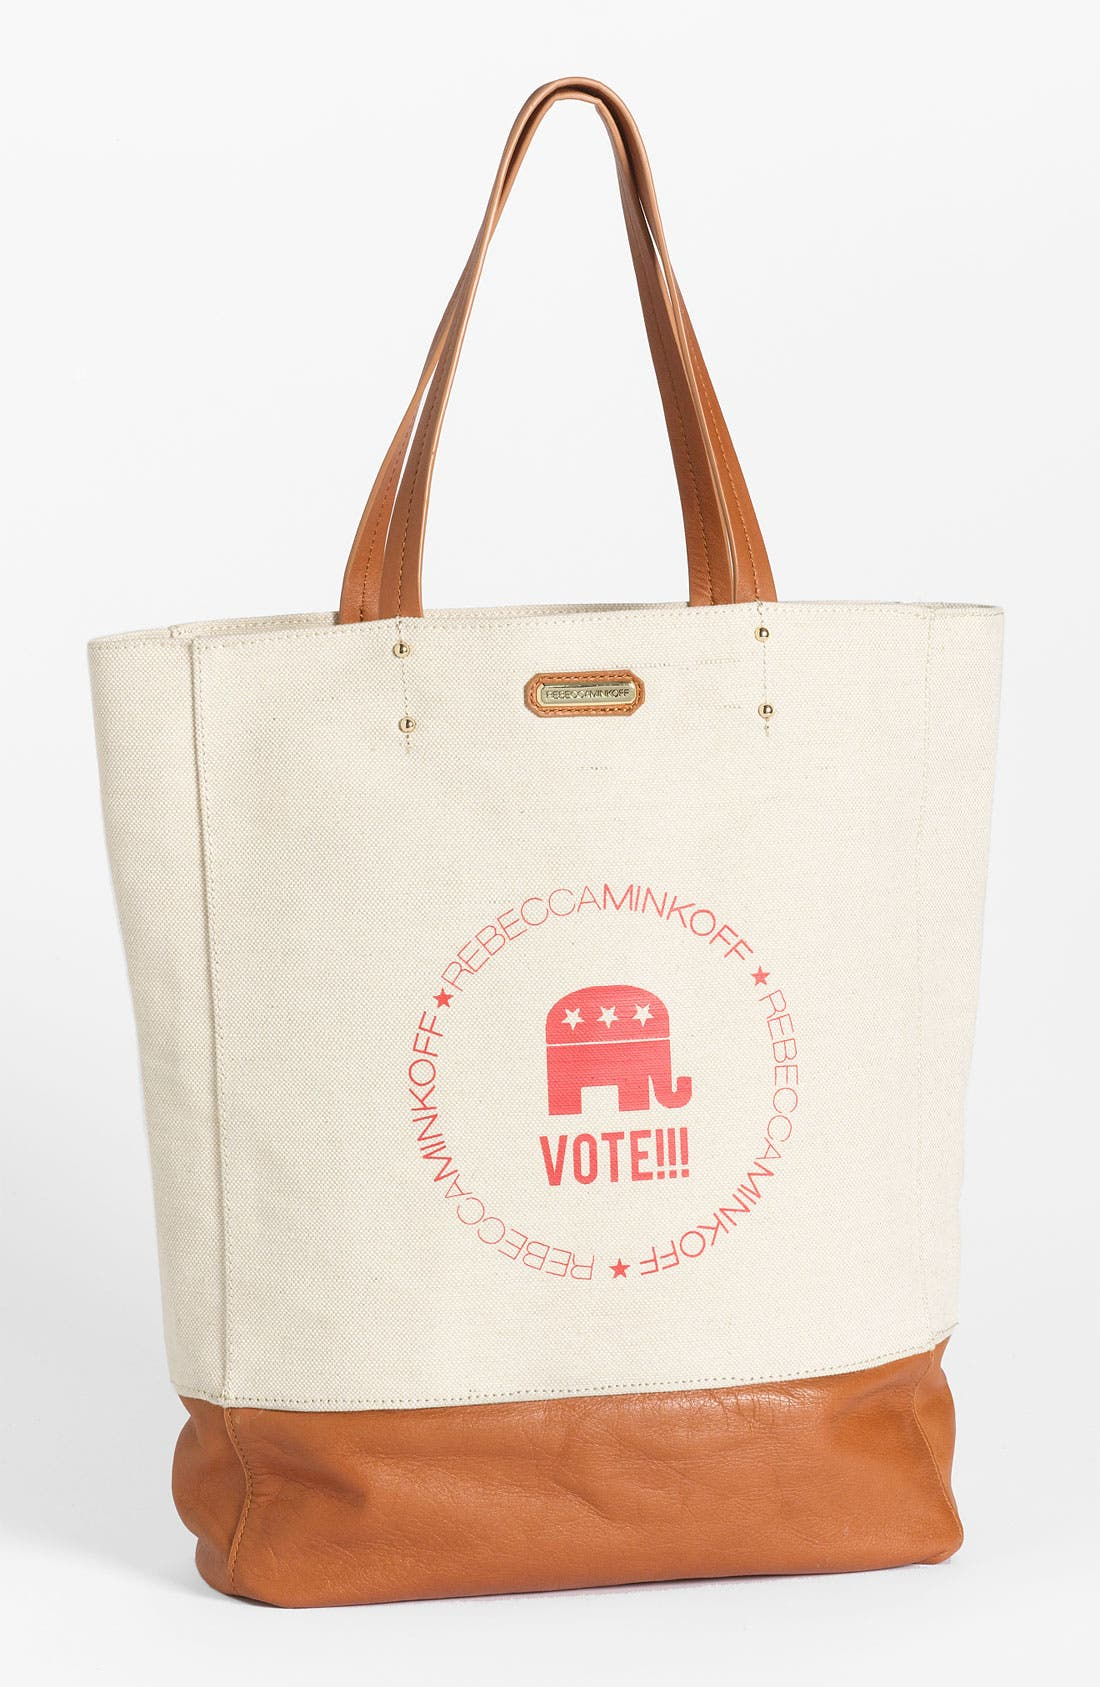 Main Image - Rebecca Minkoff 'Vote - Cherish' Tote